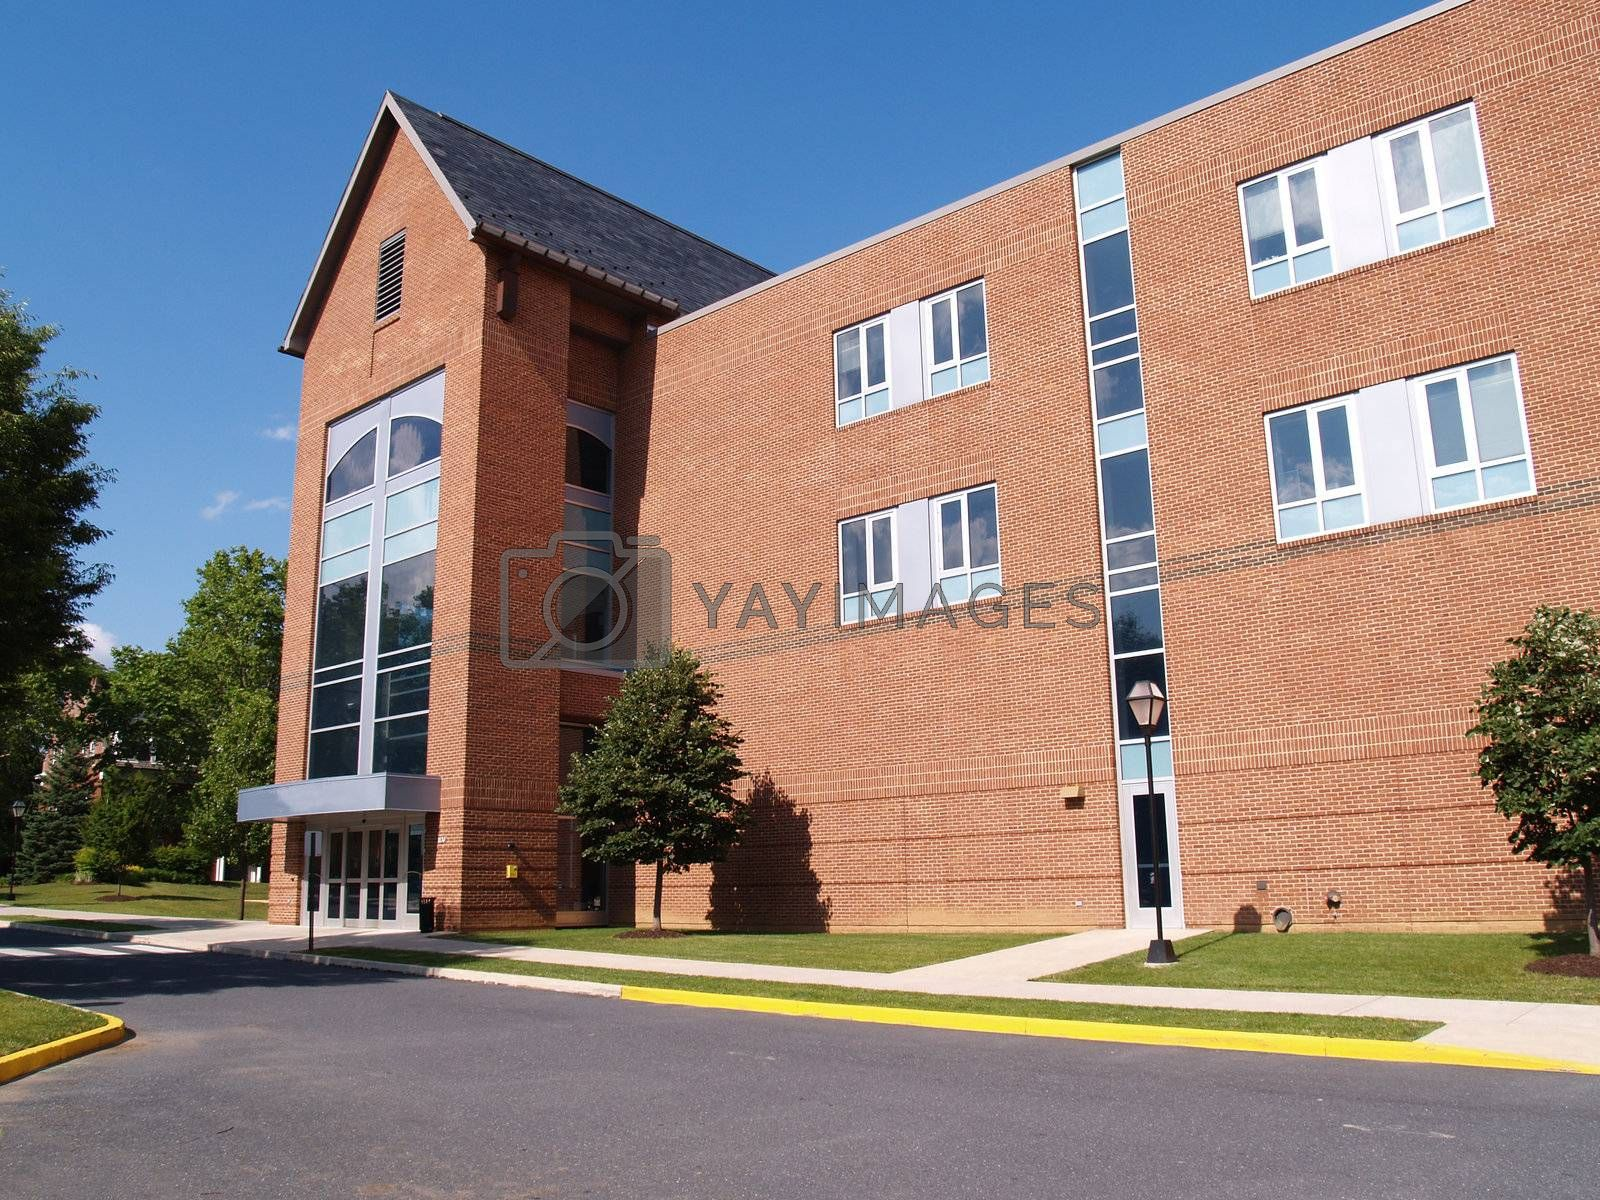 exterior of a modern brick building on a college campus